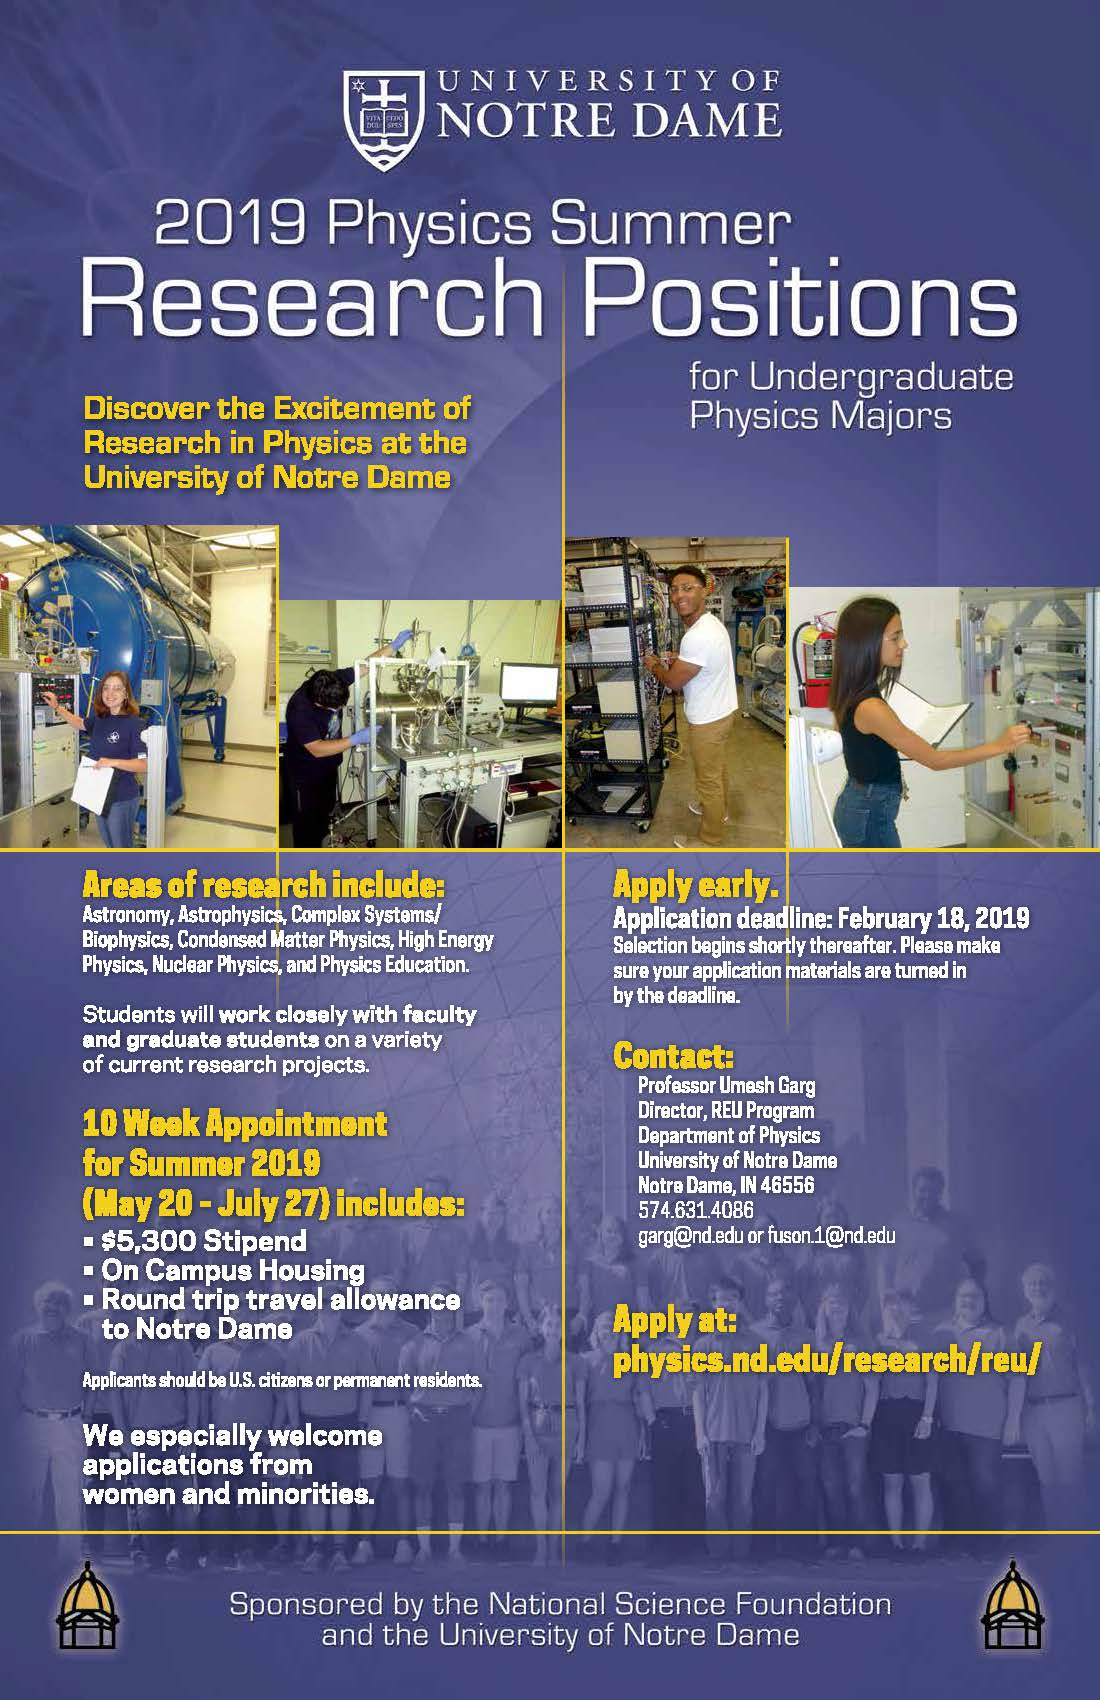 REU - Research Experience for Undergraduates // Department of